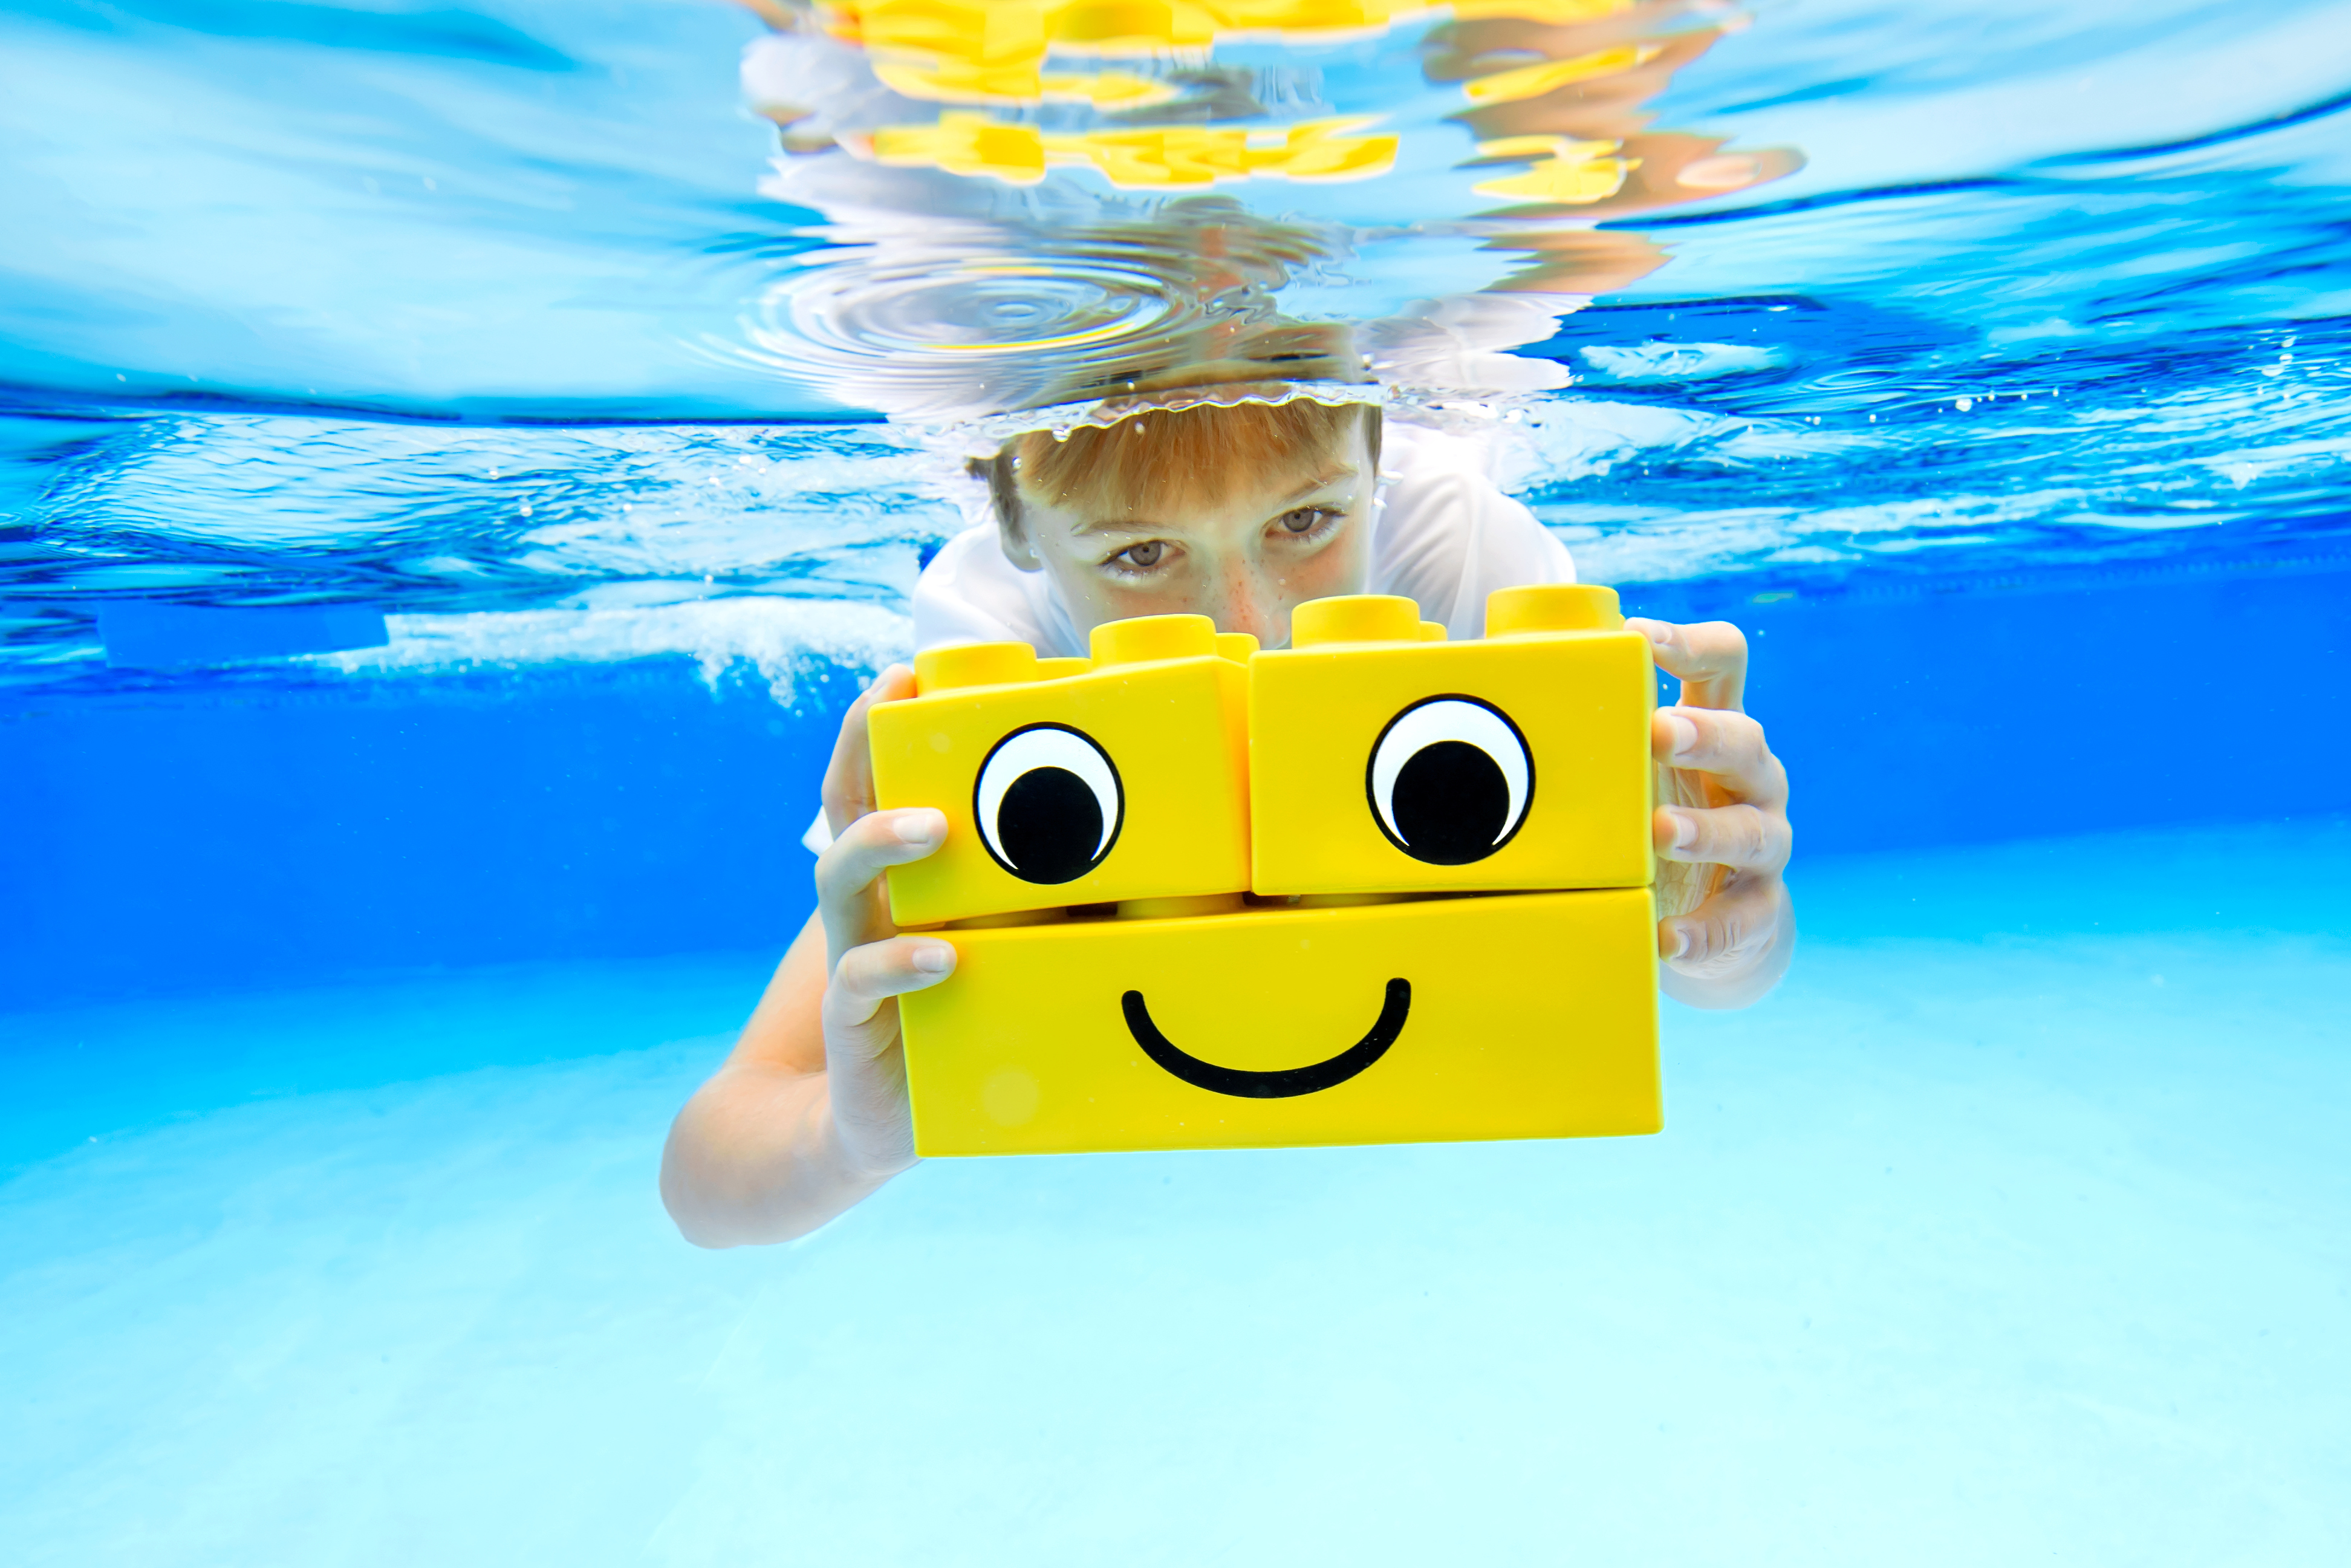 Kind in the pool with LEGO blockS